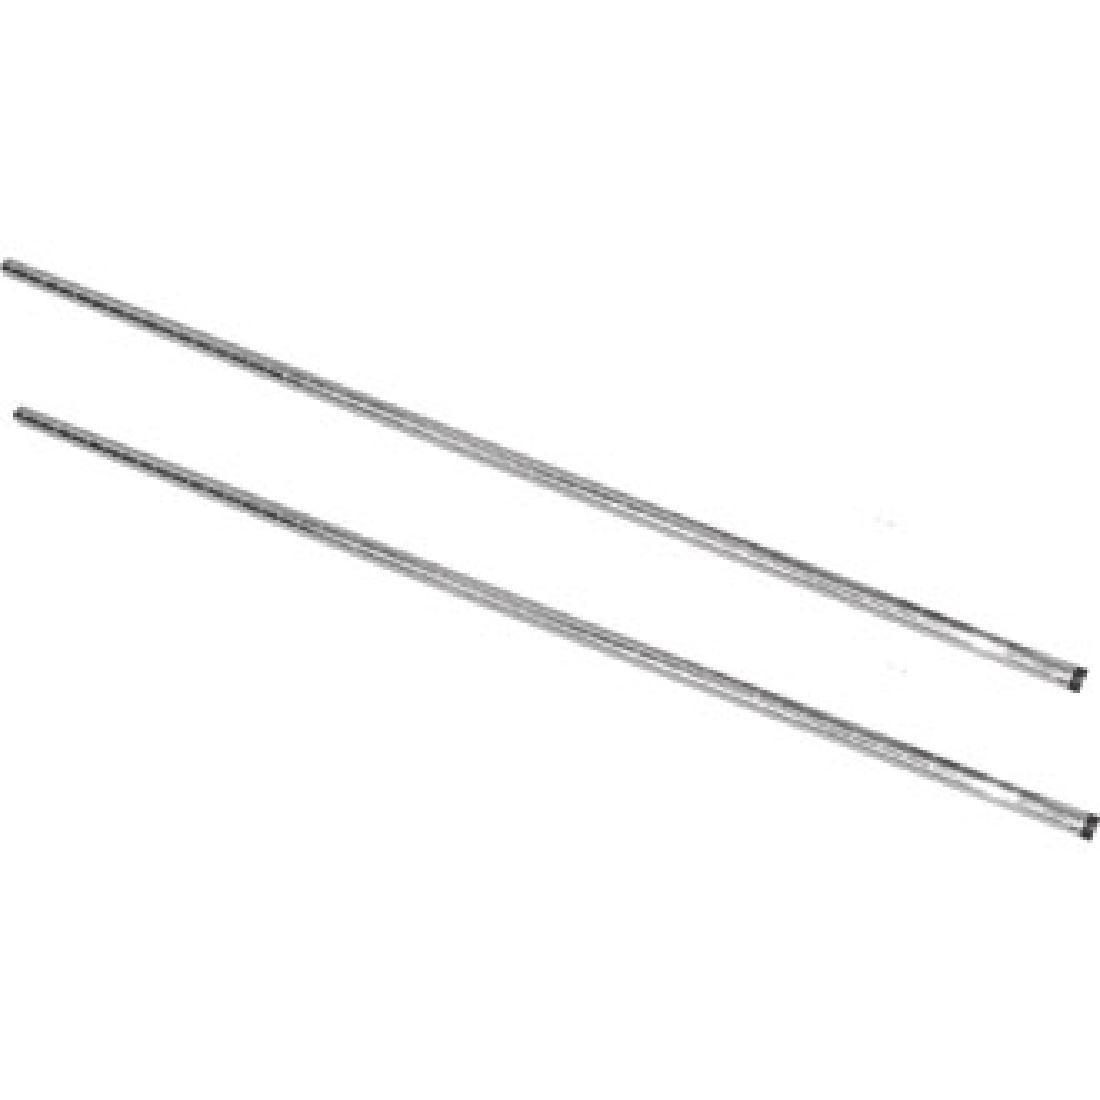 Vogue Chrome Upright Posts 1270mm Pack of 2 - U887